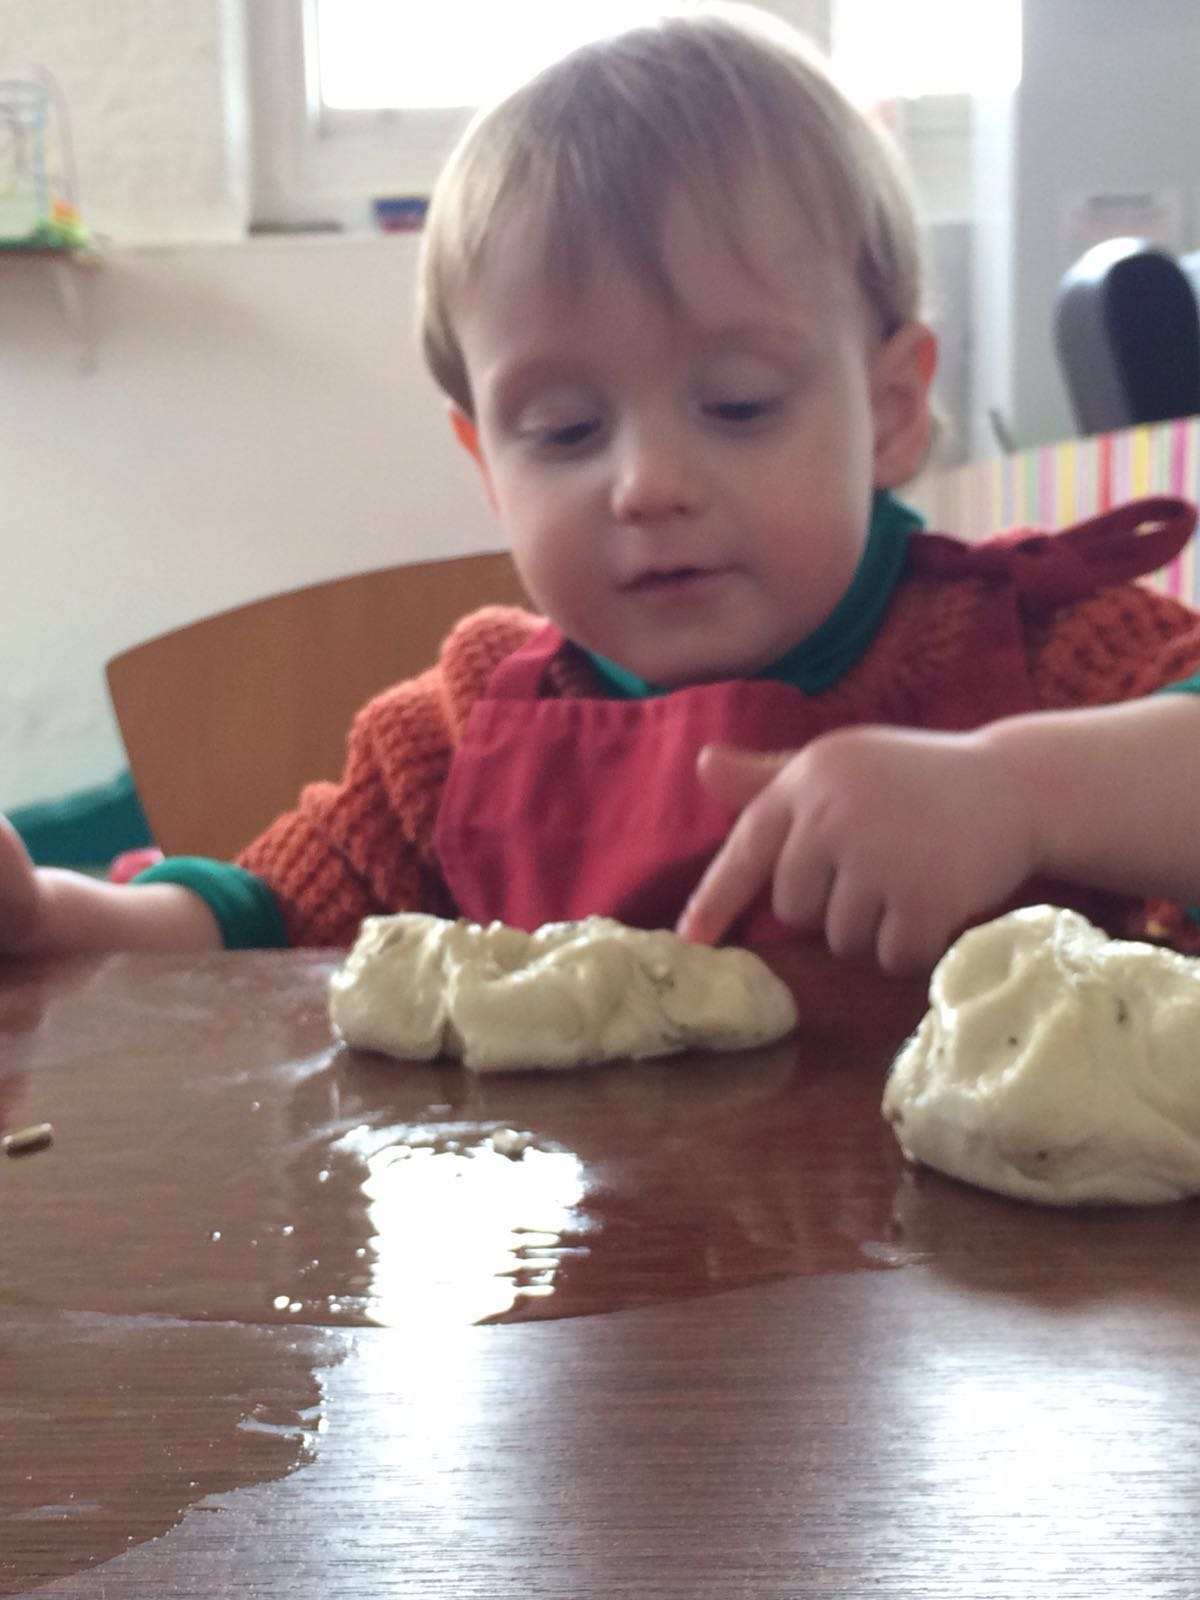 lff-chiswick-cooking-seed-topped-bread-rolls-02.jpg